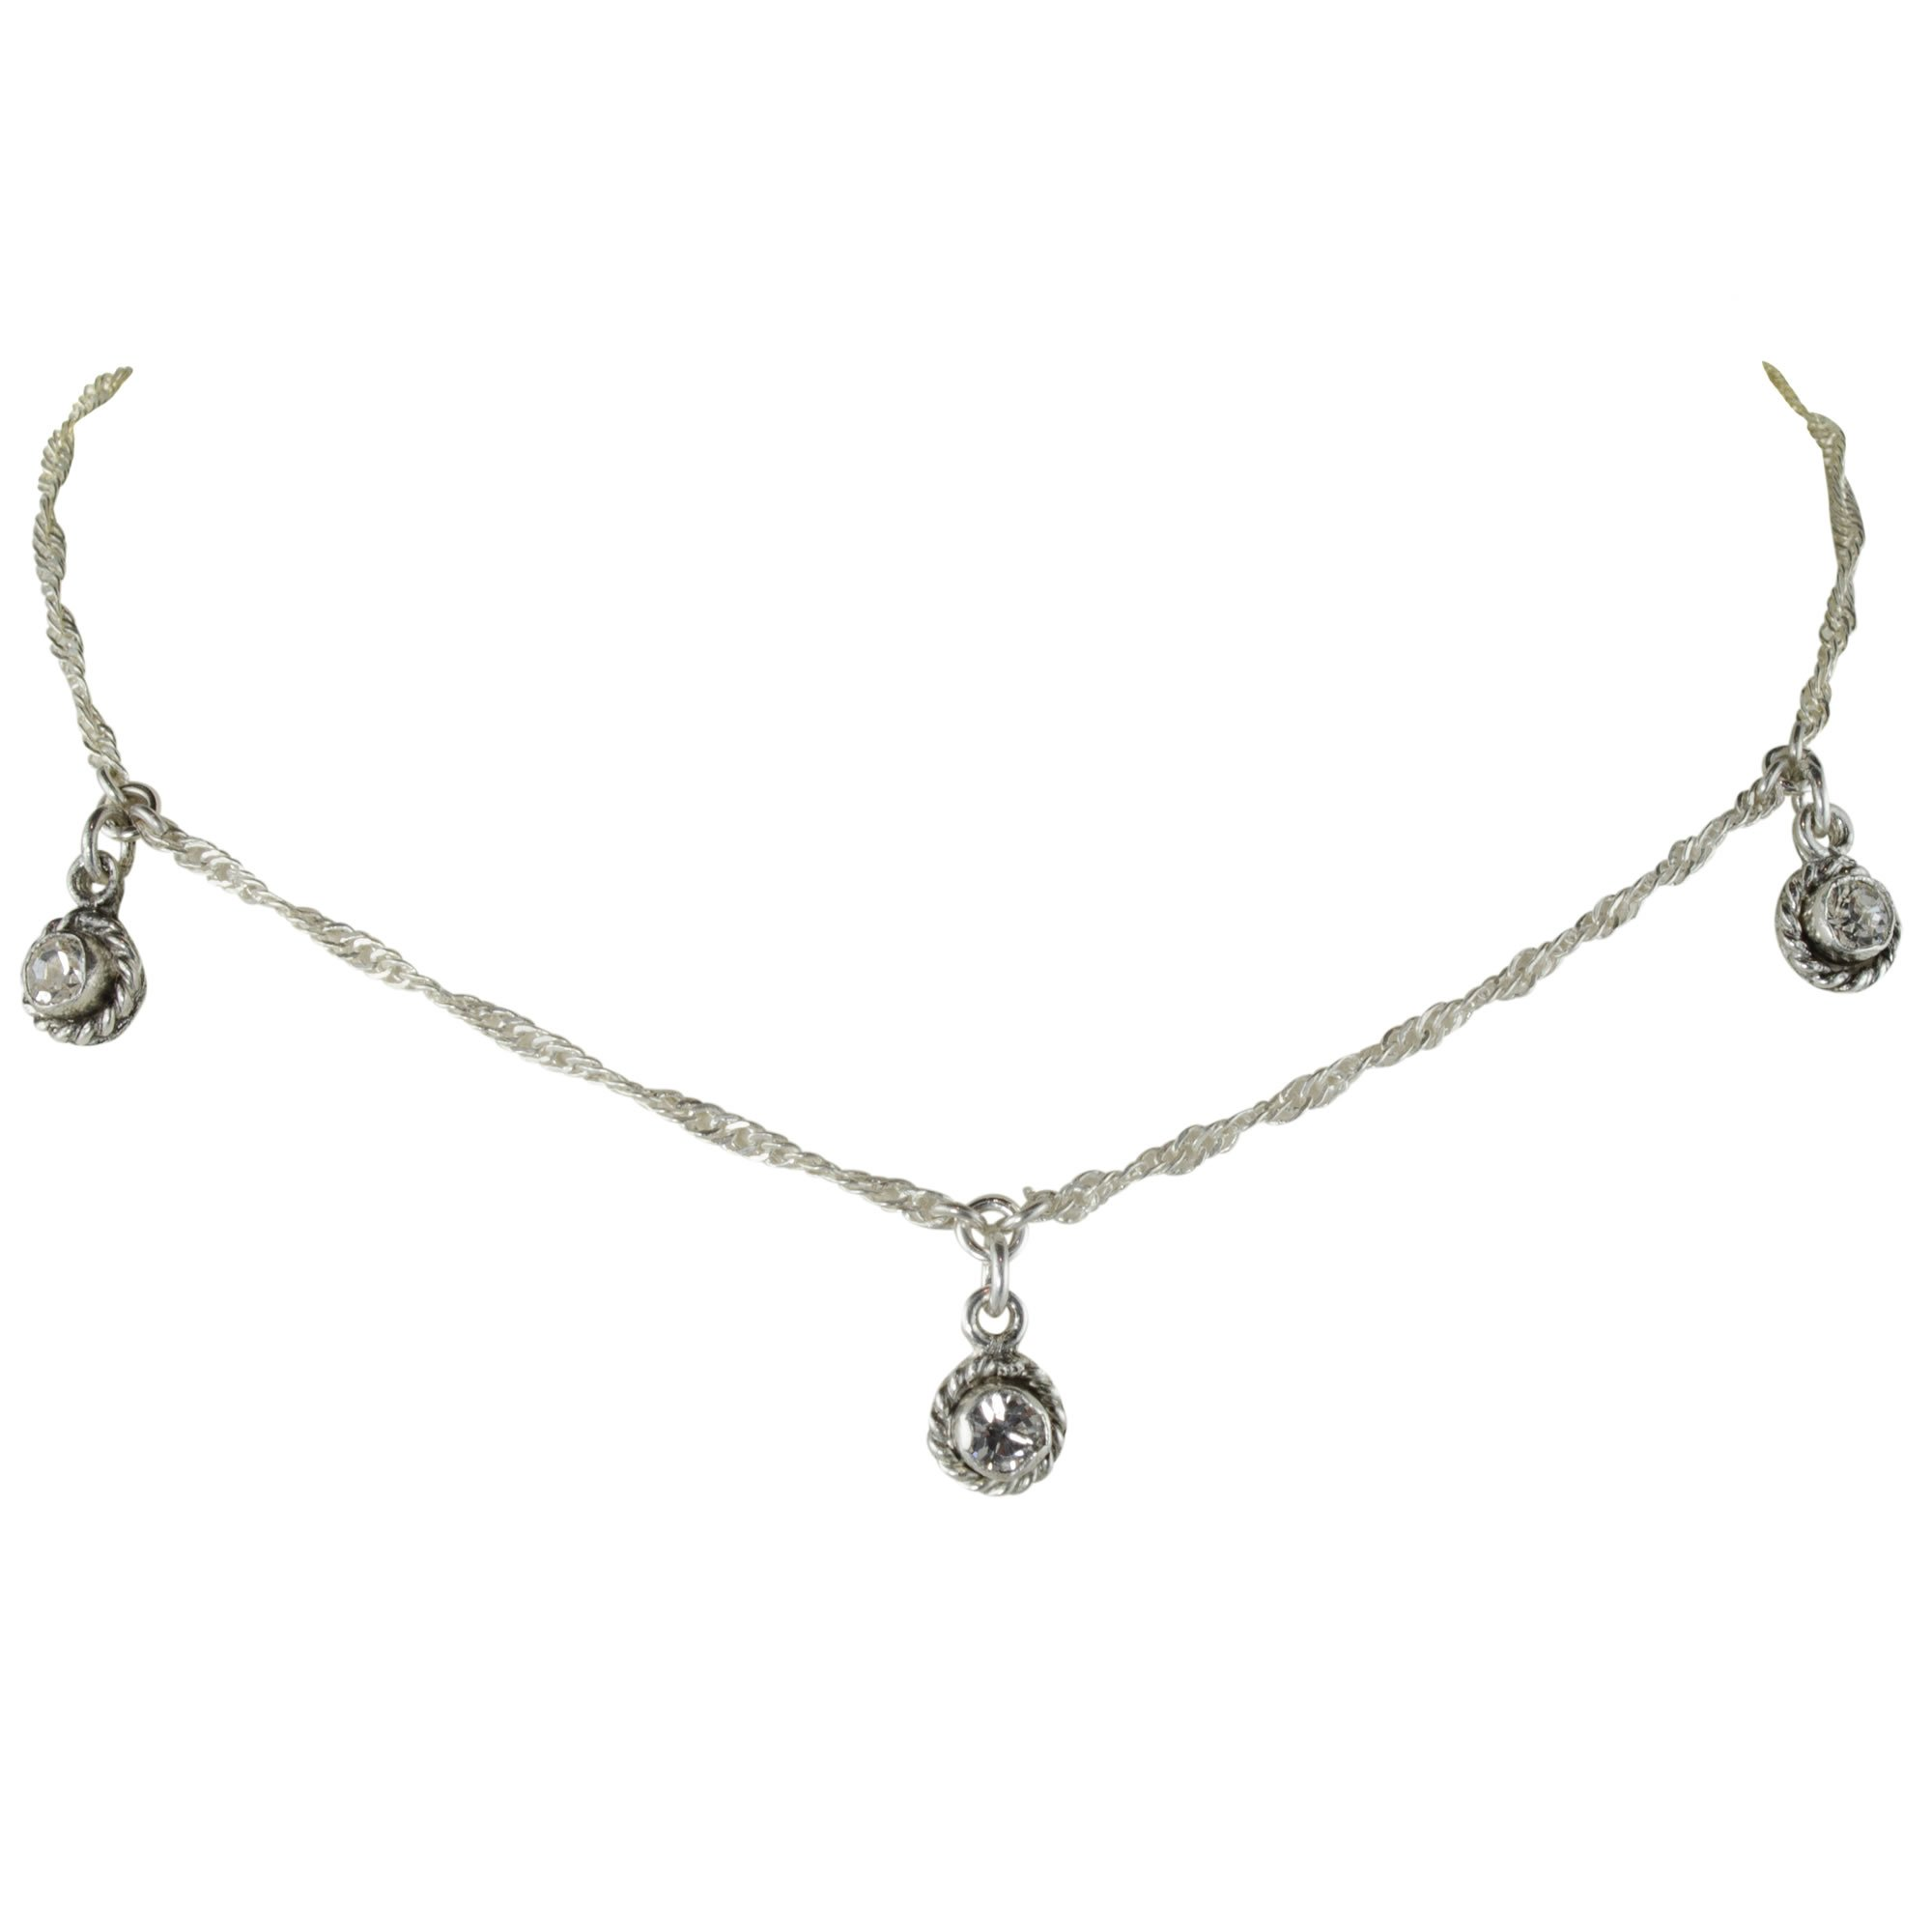 Santa Monica 3 Crystal Choker - Silver - VSA - Virgins Saints Angels Jewelry